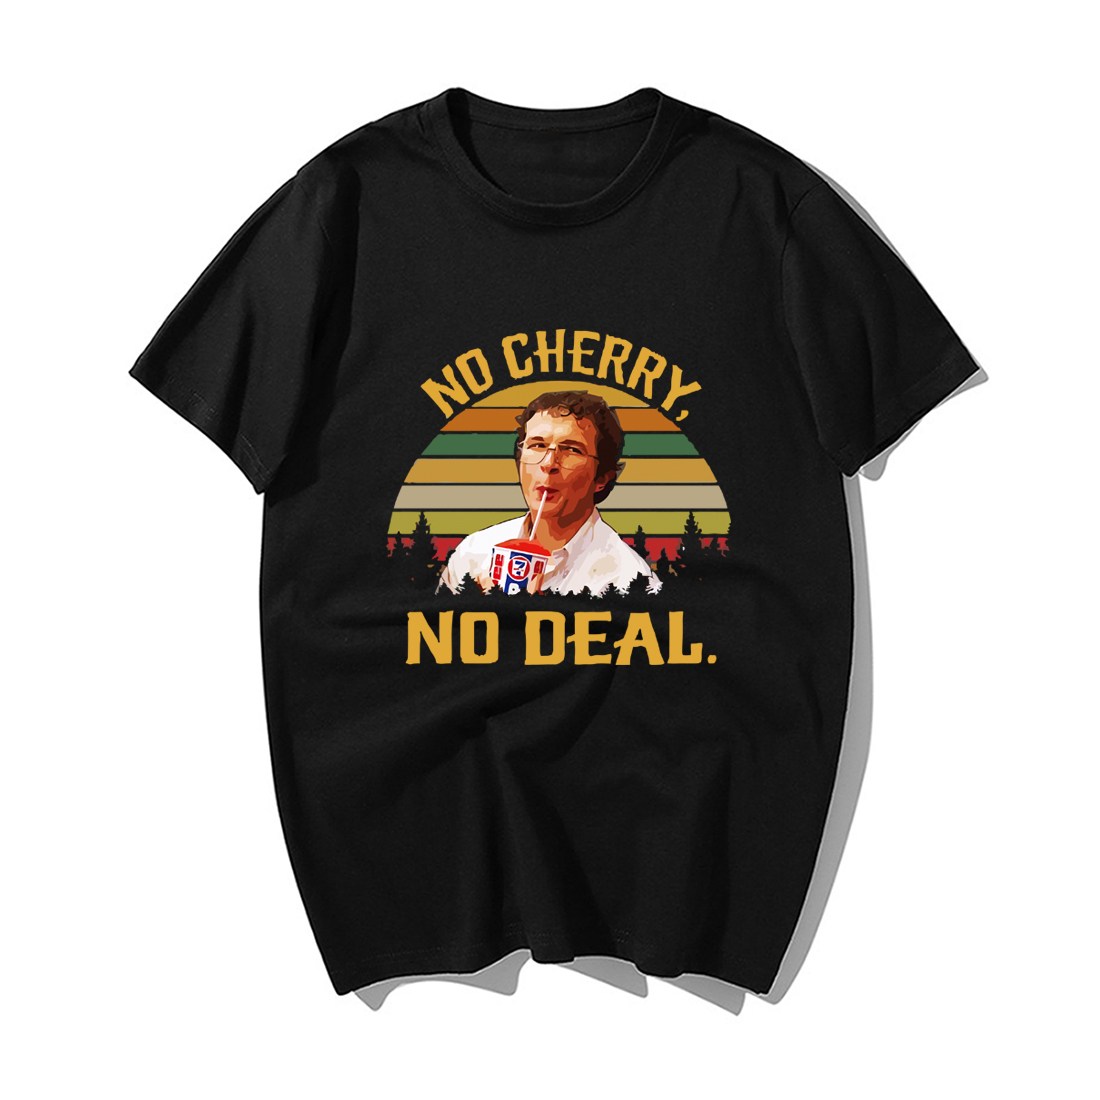 2019 Fashion Stranger Things T Shirt No Cherry No Deal Funny Men Tshirt Summer Casual Cotton Hip Hop Tops Streetwear